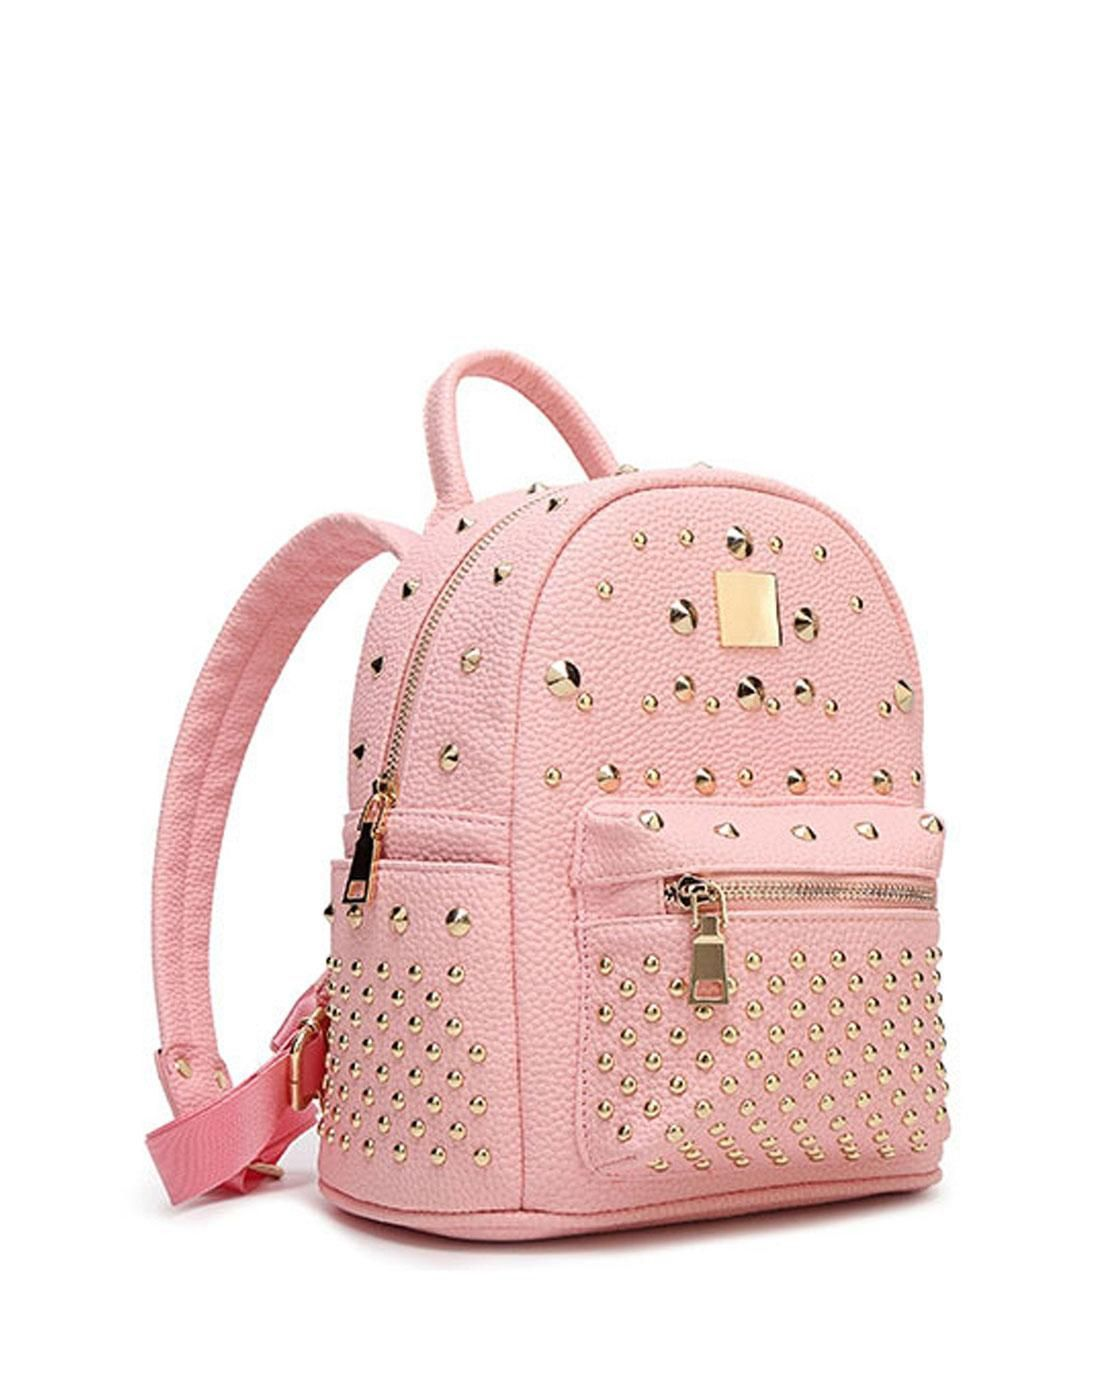 ... travel ladies small backpack.  AdoreWe  VIPme Backpacks - SVMONO Pink School  Bags Backpacks for College Girls - AdoreWe.com 185d10ace4acb